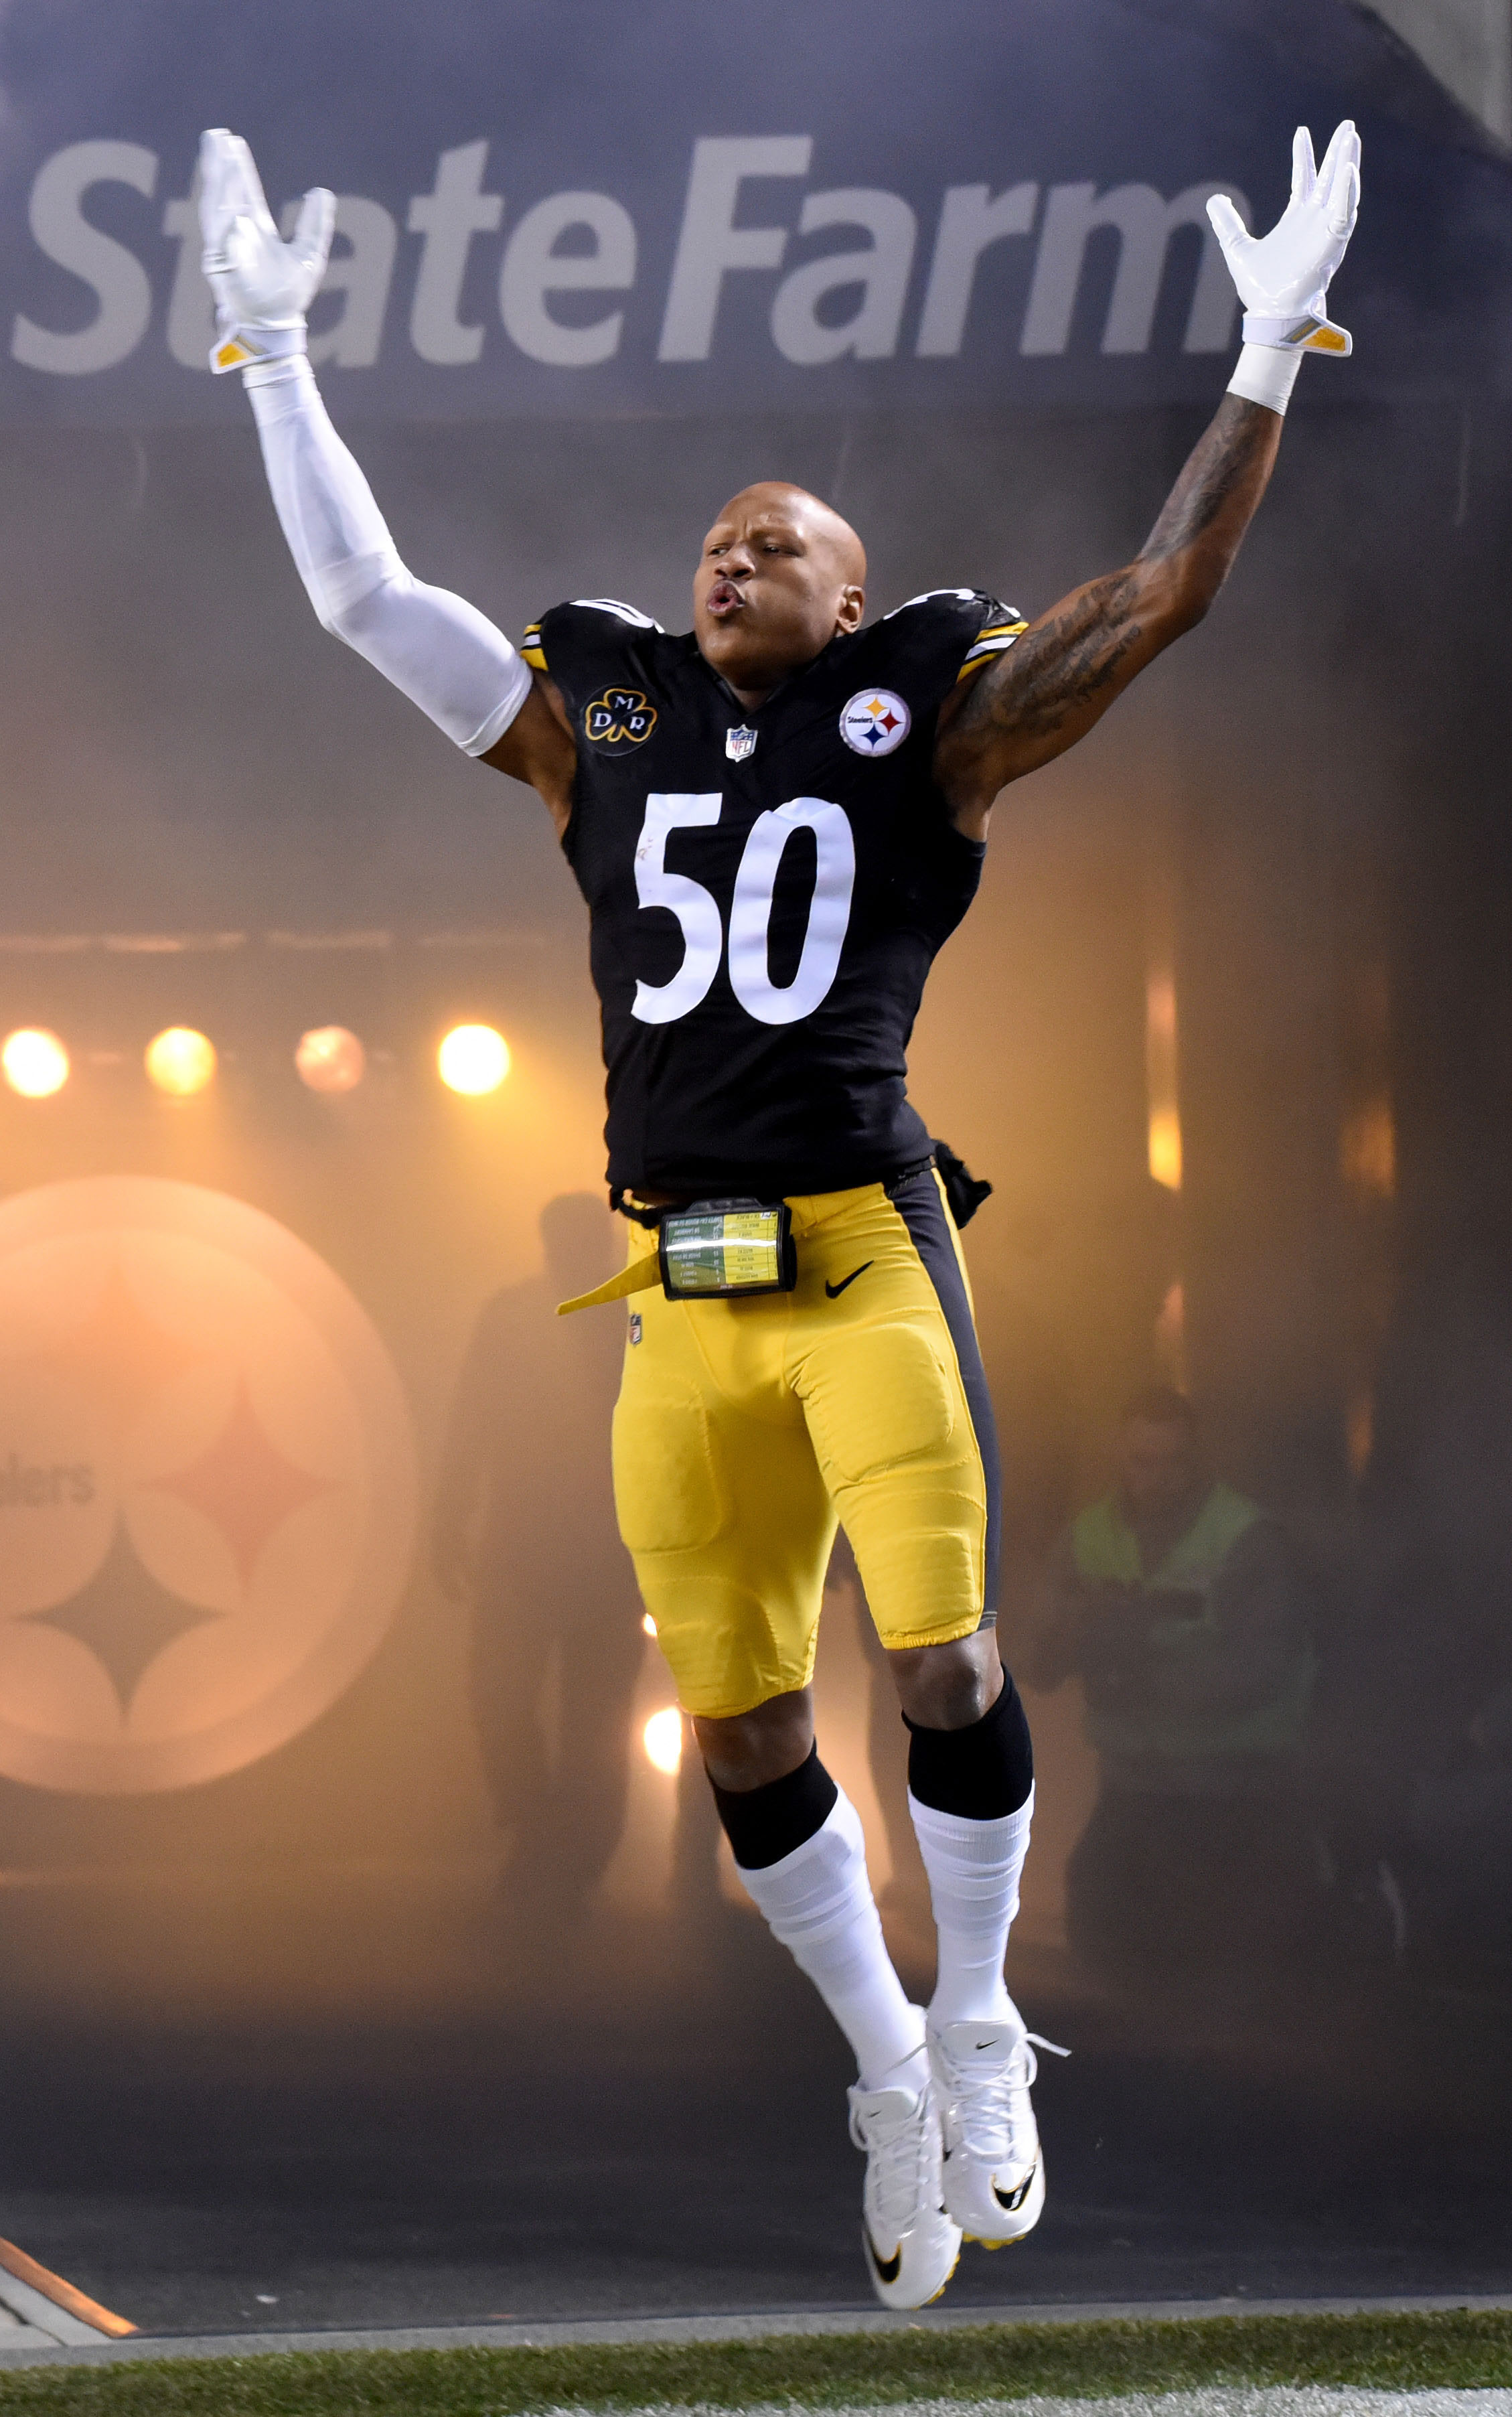 a63d3a8f8 The Steelers are once again doing right by Ryan Shazier. The team is  tolling his contract into 2019, with plans to eventually place him on the  reserve/PUP ...